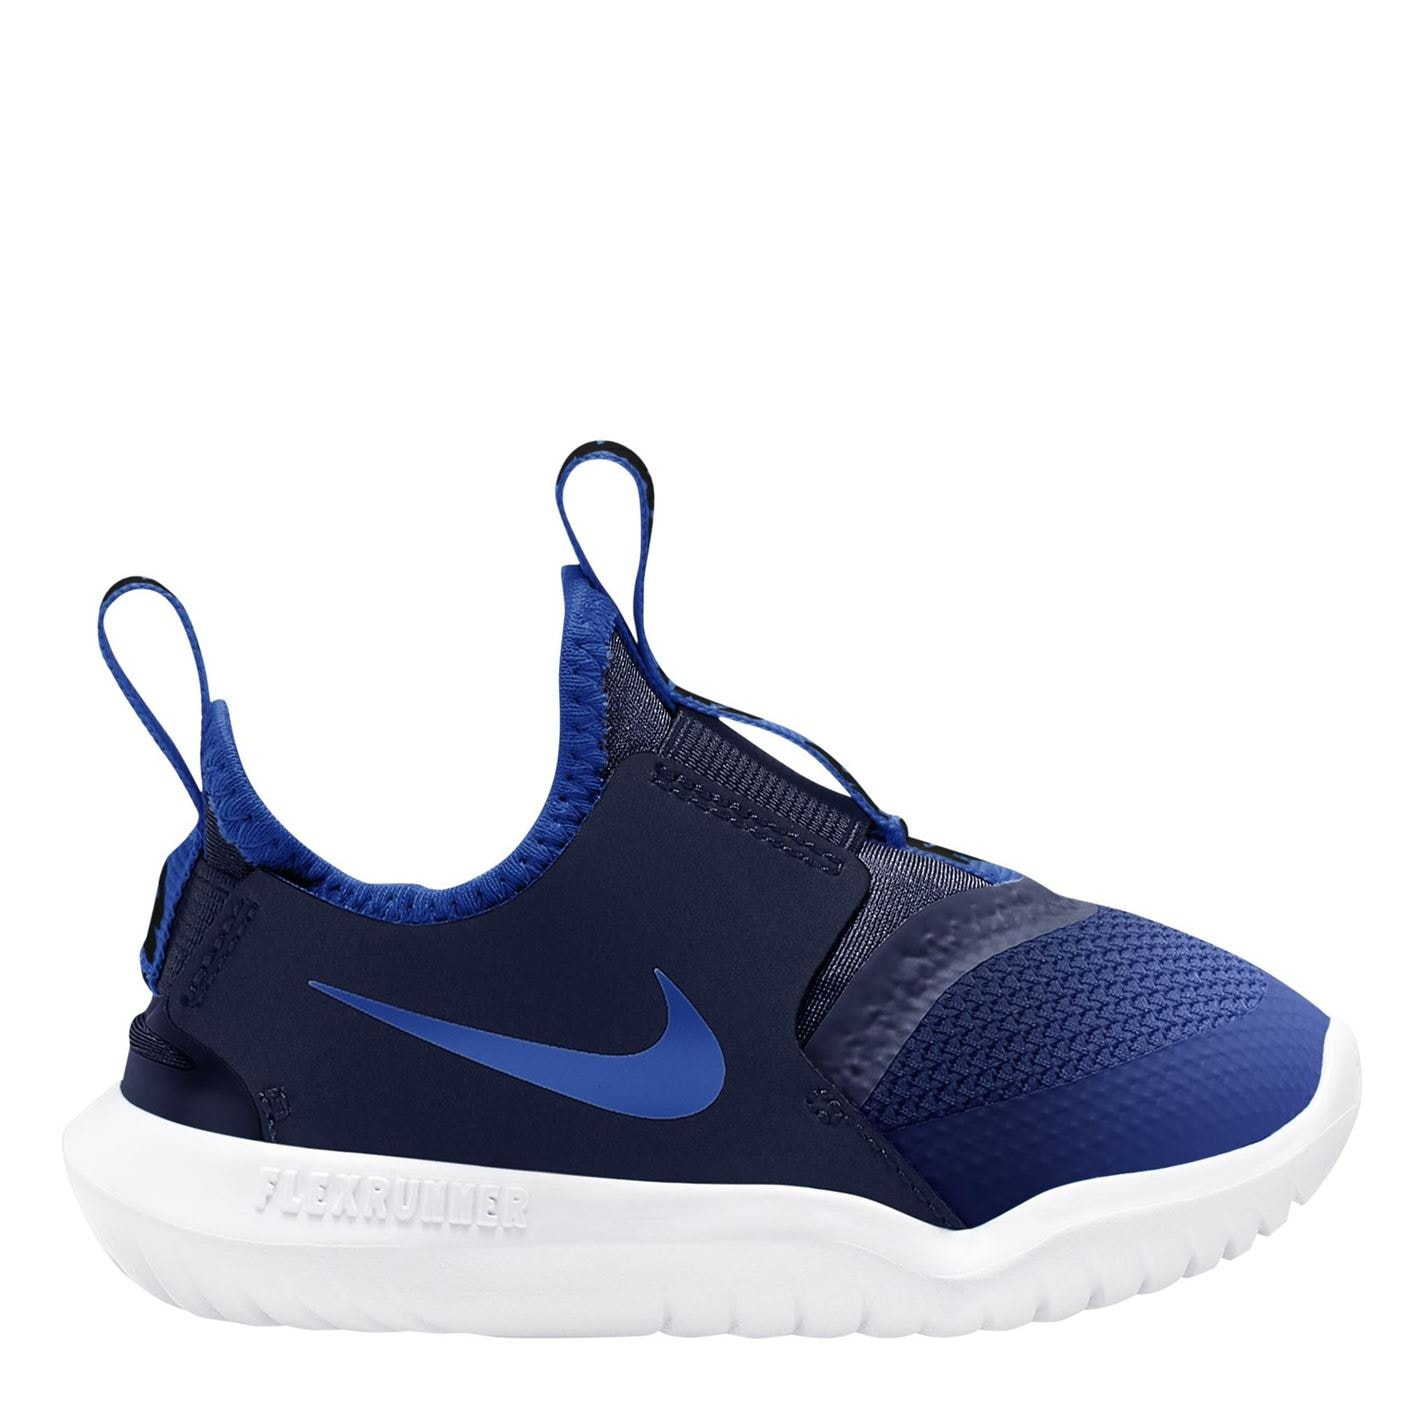 Nike Flex Runner Baby/Toddler Shoe Royal/Roy/Navy